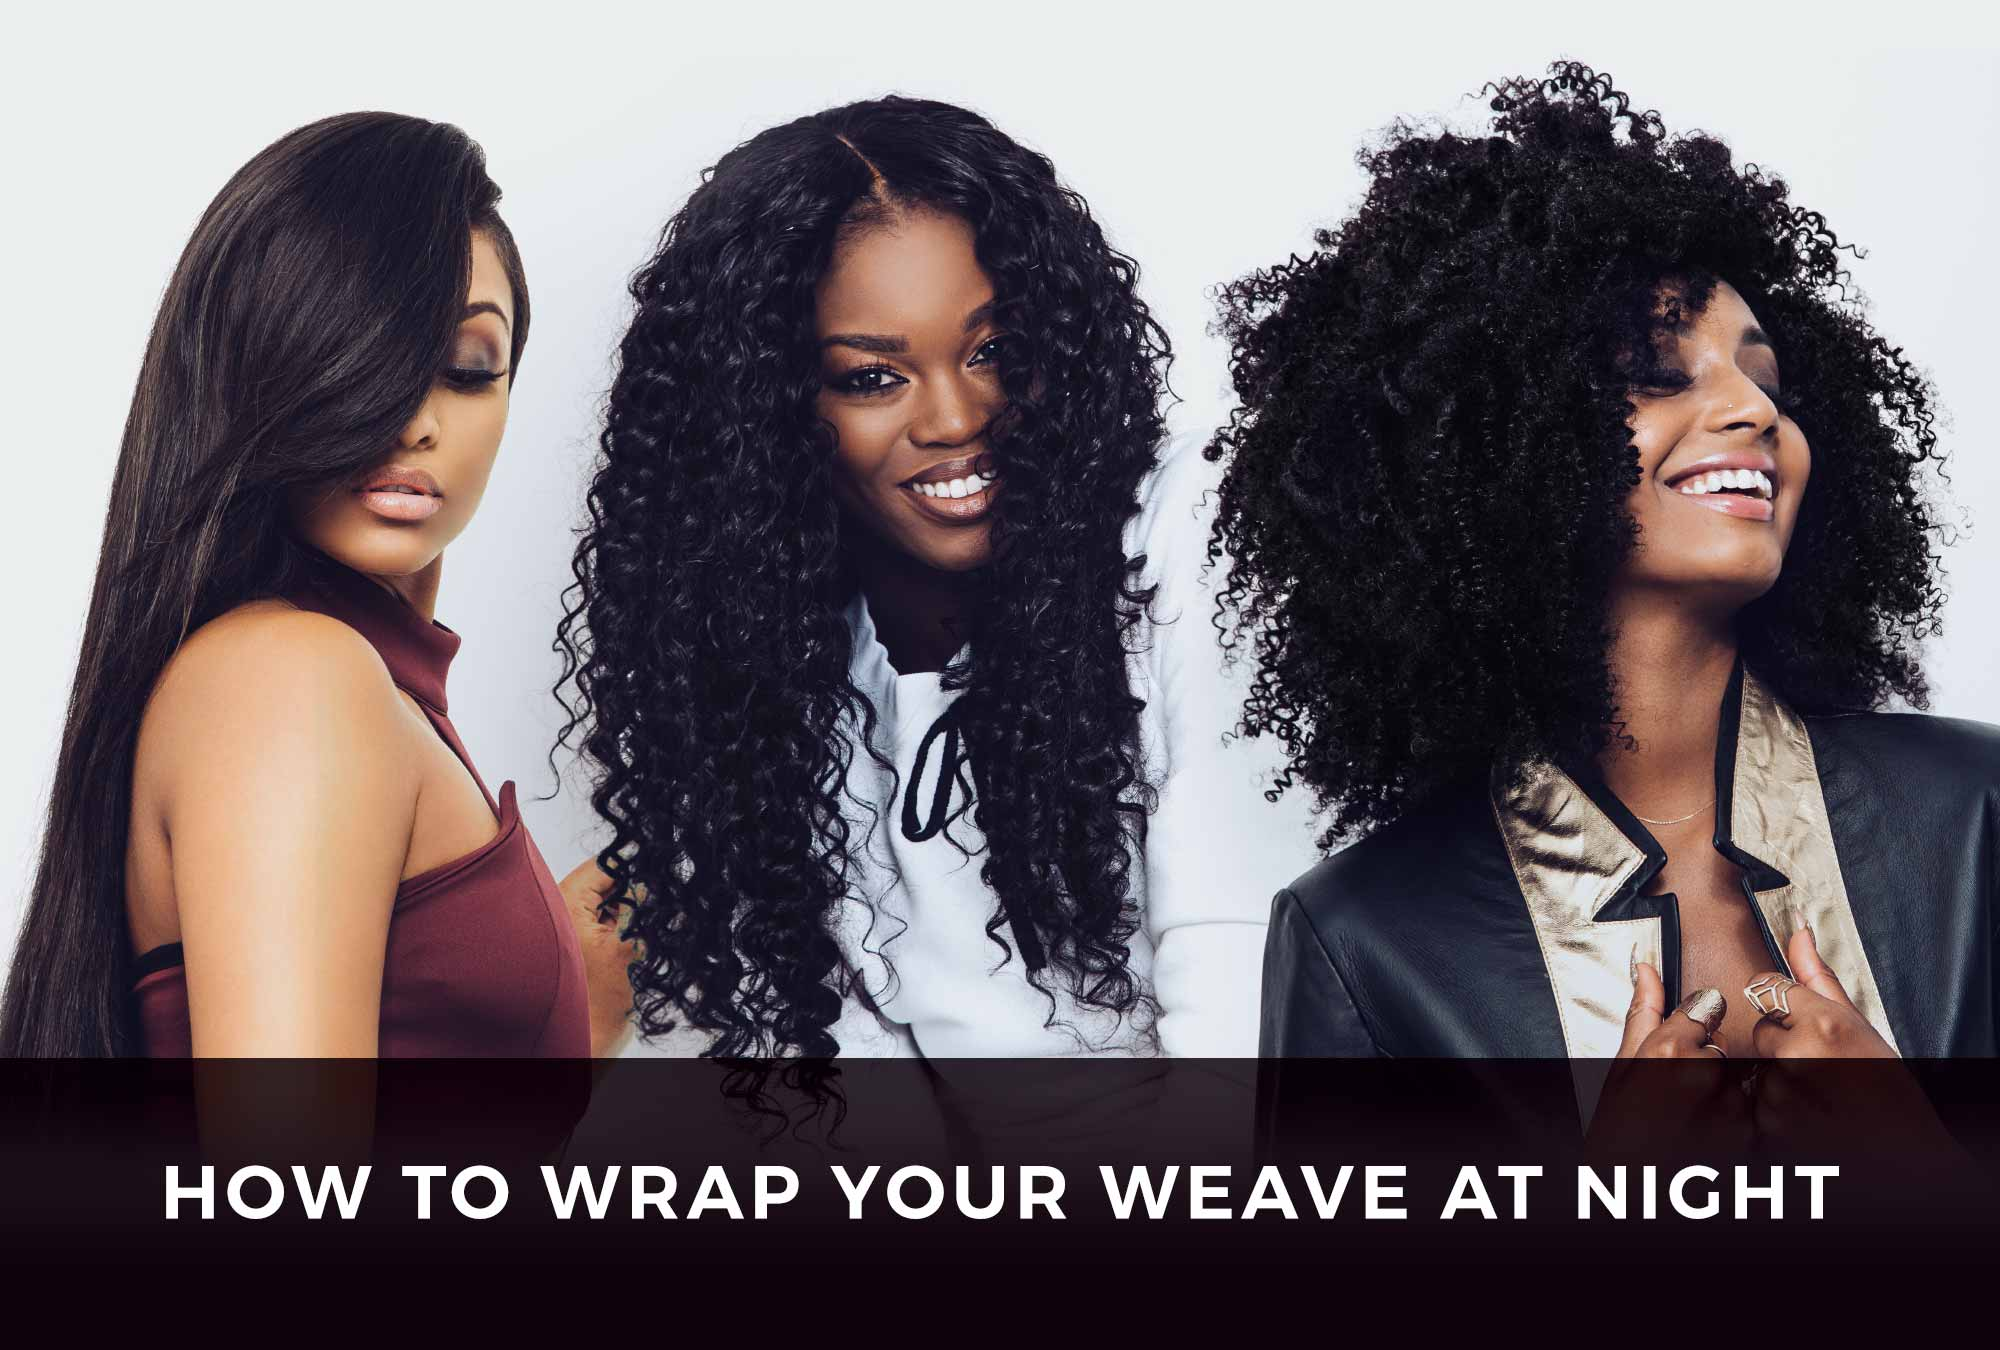 How To Keep Your Hair Flawless At Night